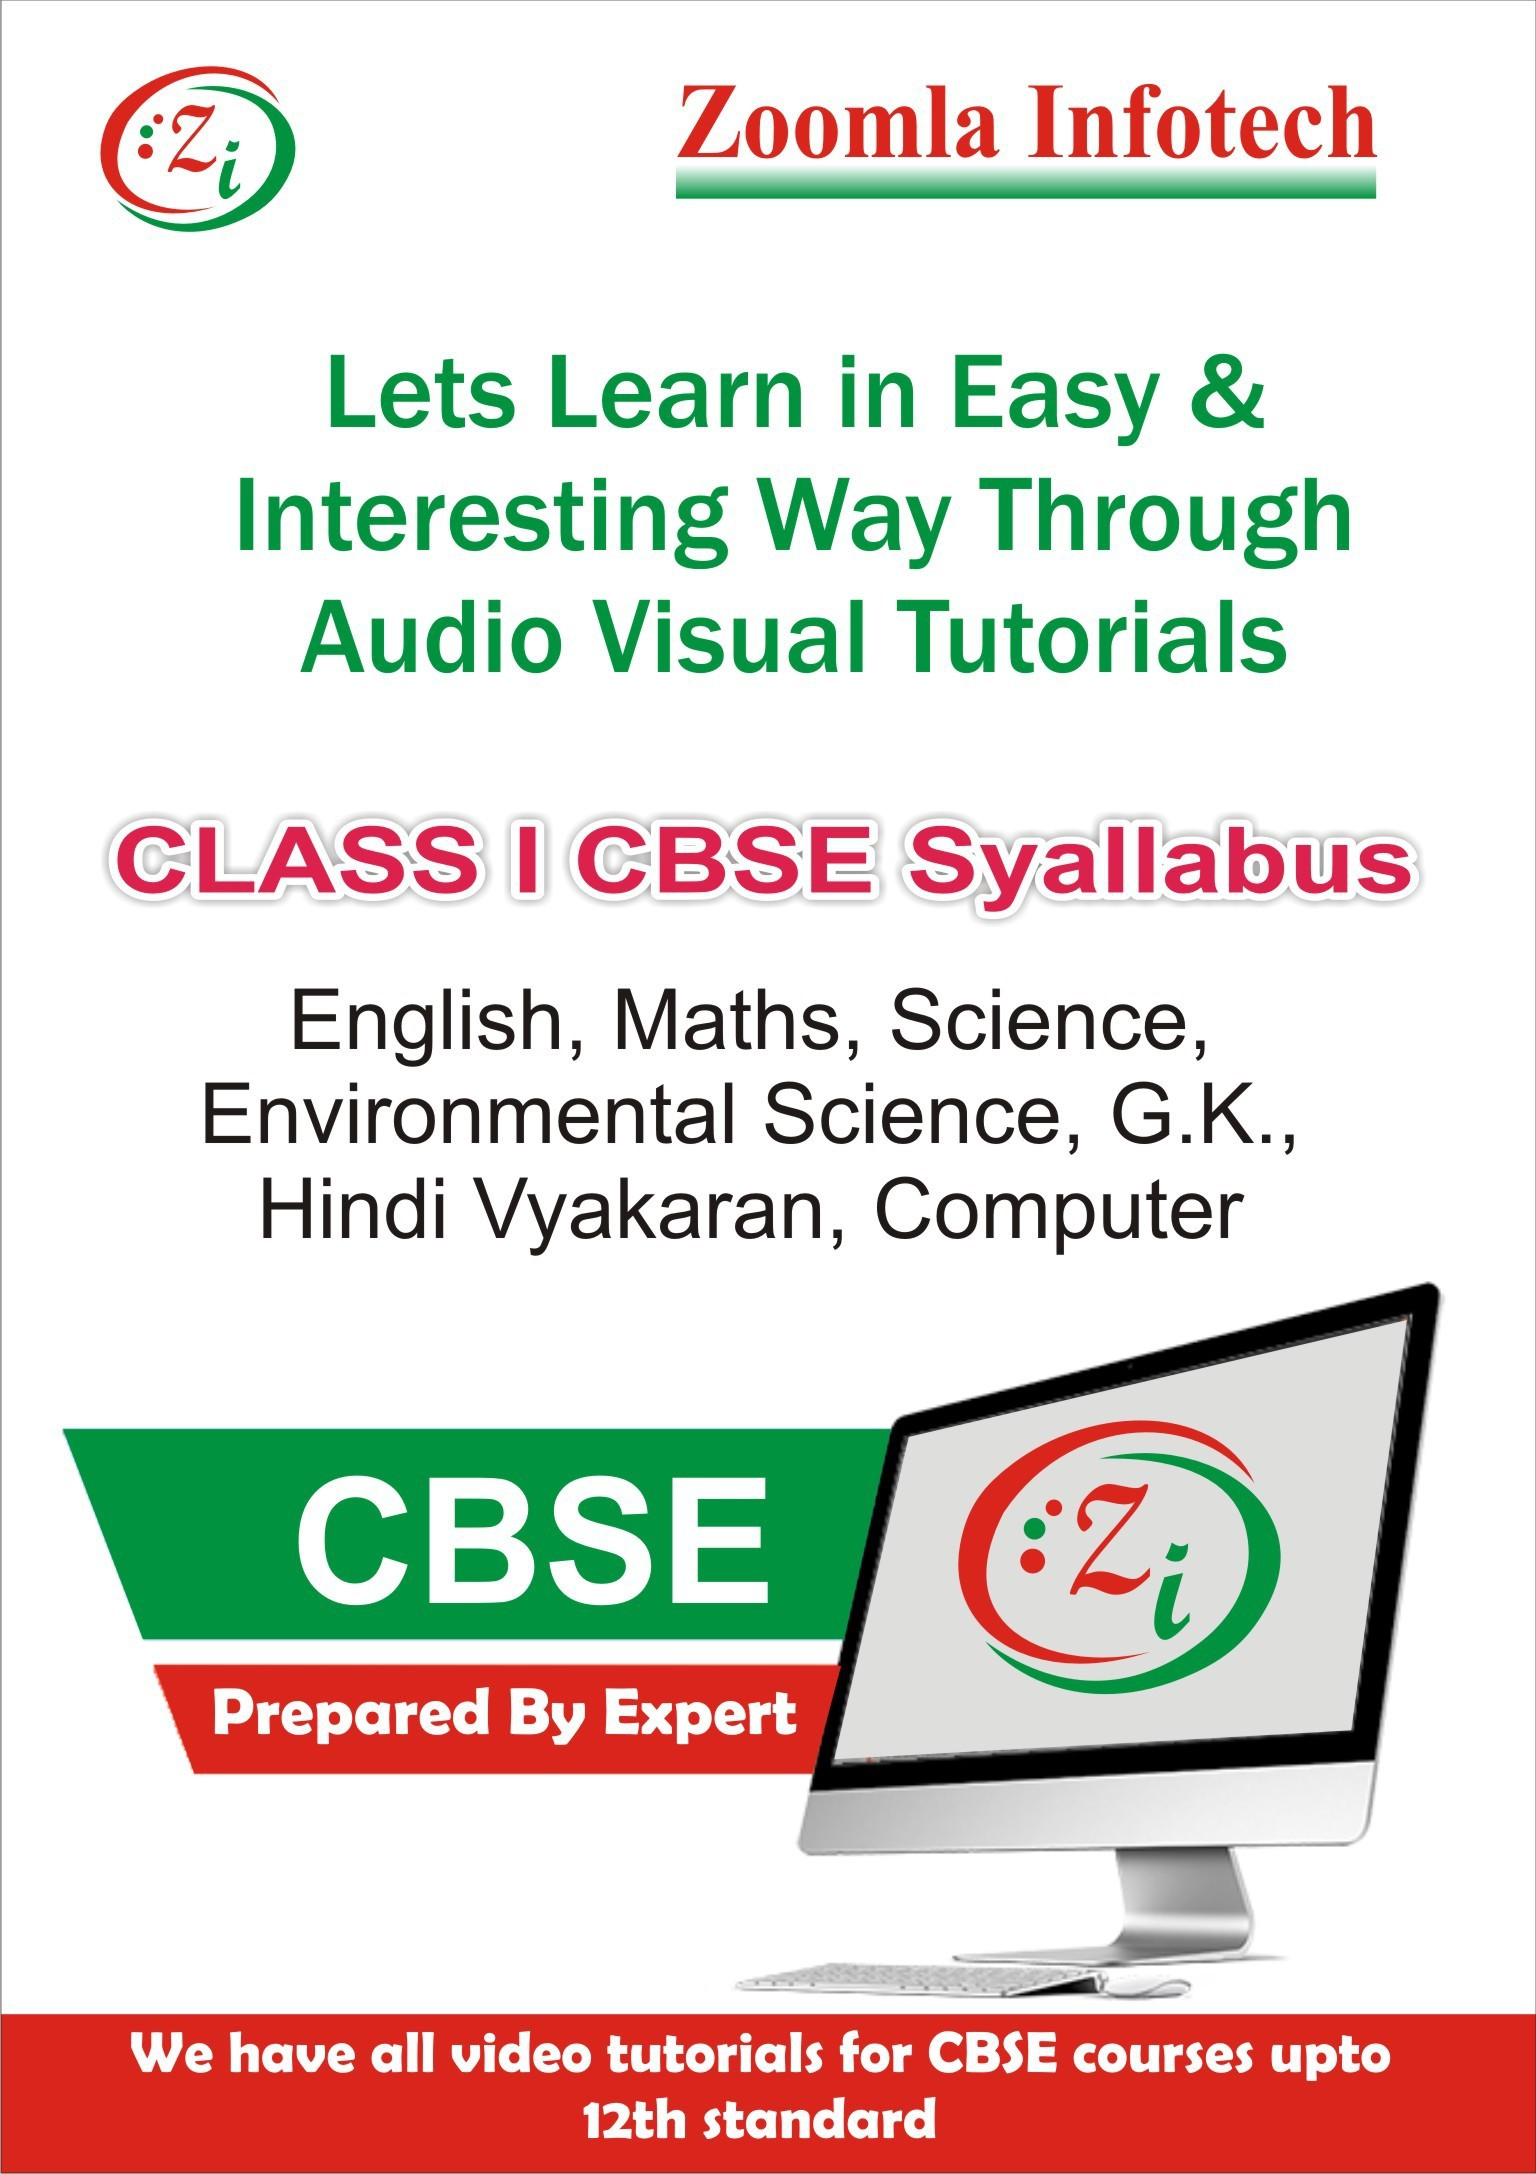 Zoomla Infotech Class 1 CBSE English, Maths, Science, Environmental Science, G.k., Hindi Vyakaran, Computer Video Tutorials(DVD)